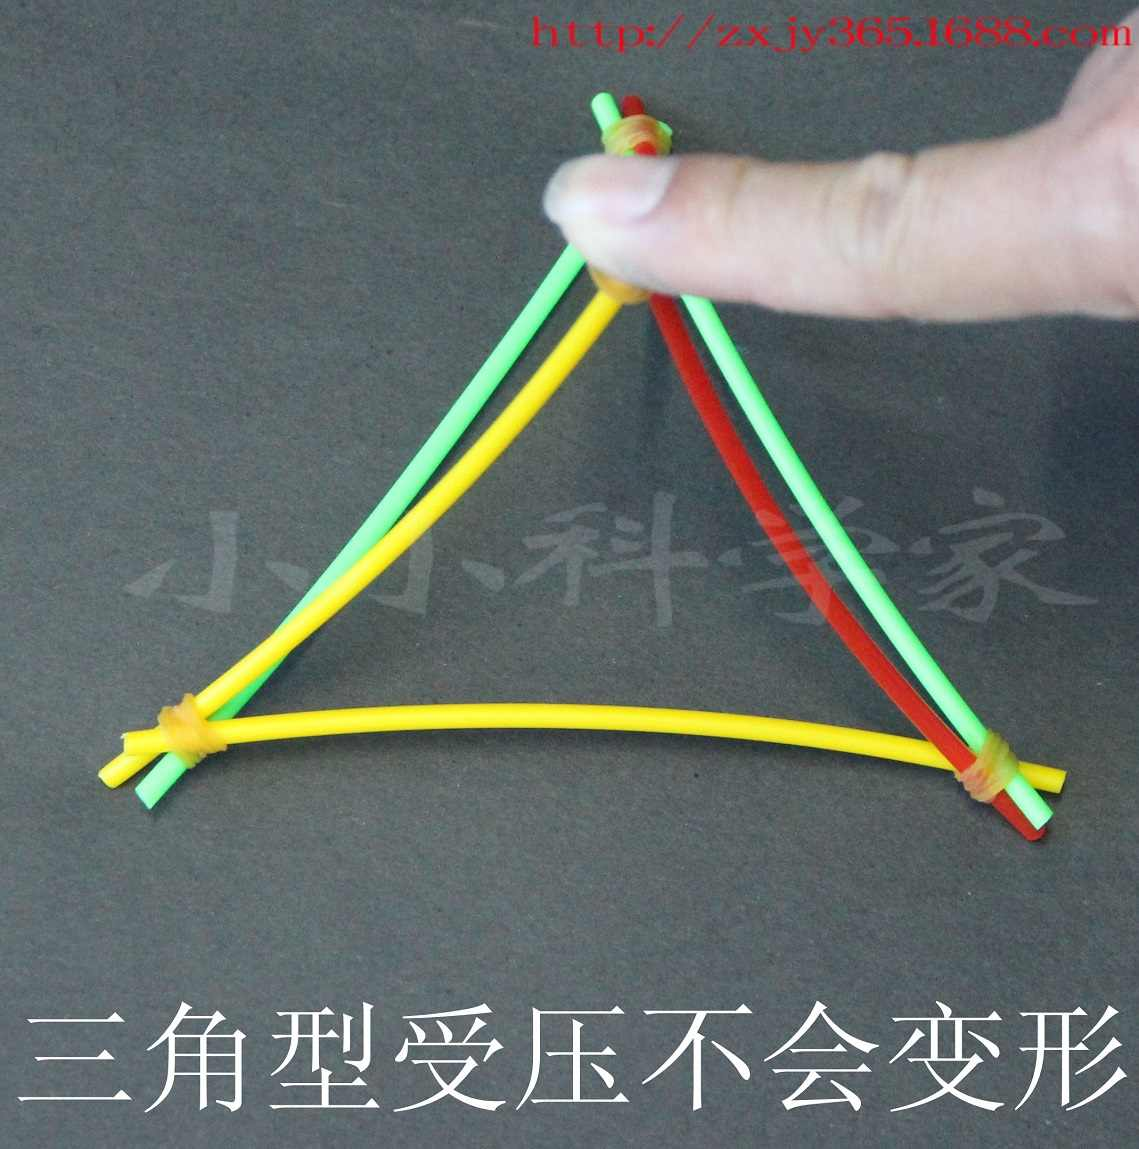 fun Physical Science experiments Triangular stability equipment Principles of mechanics not easily deformed under pressure